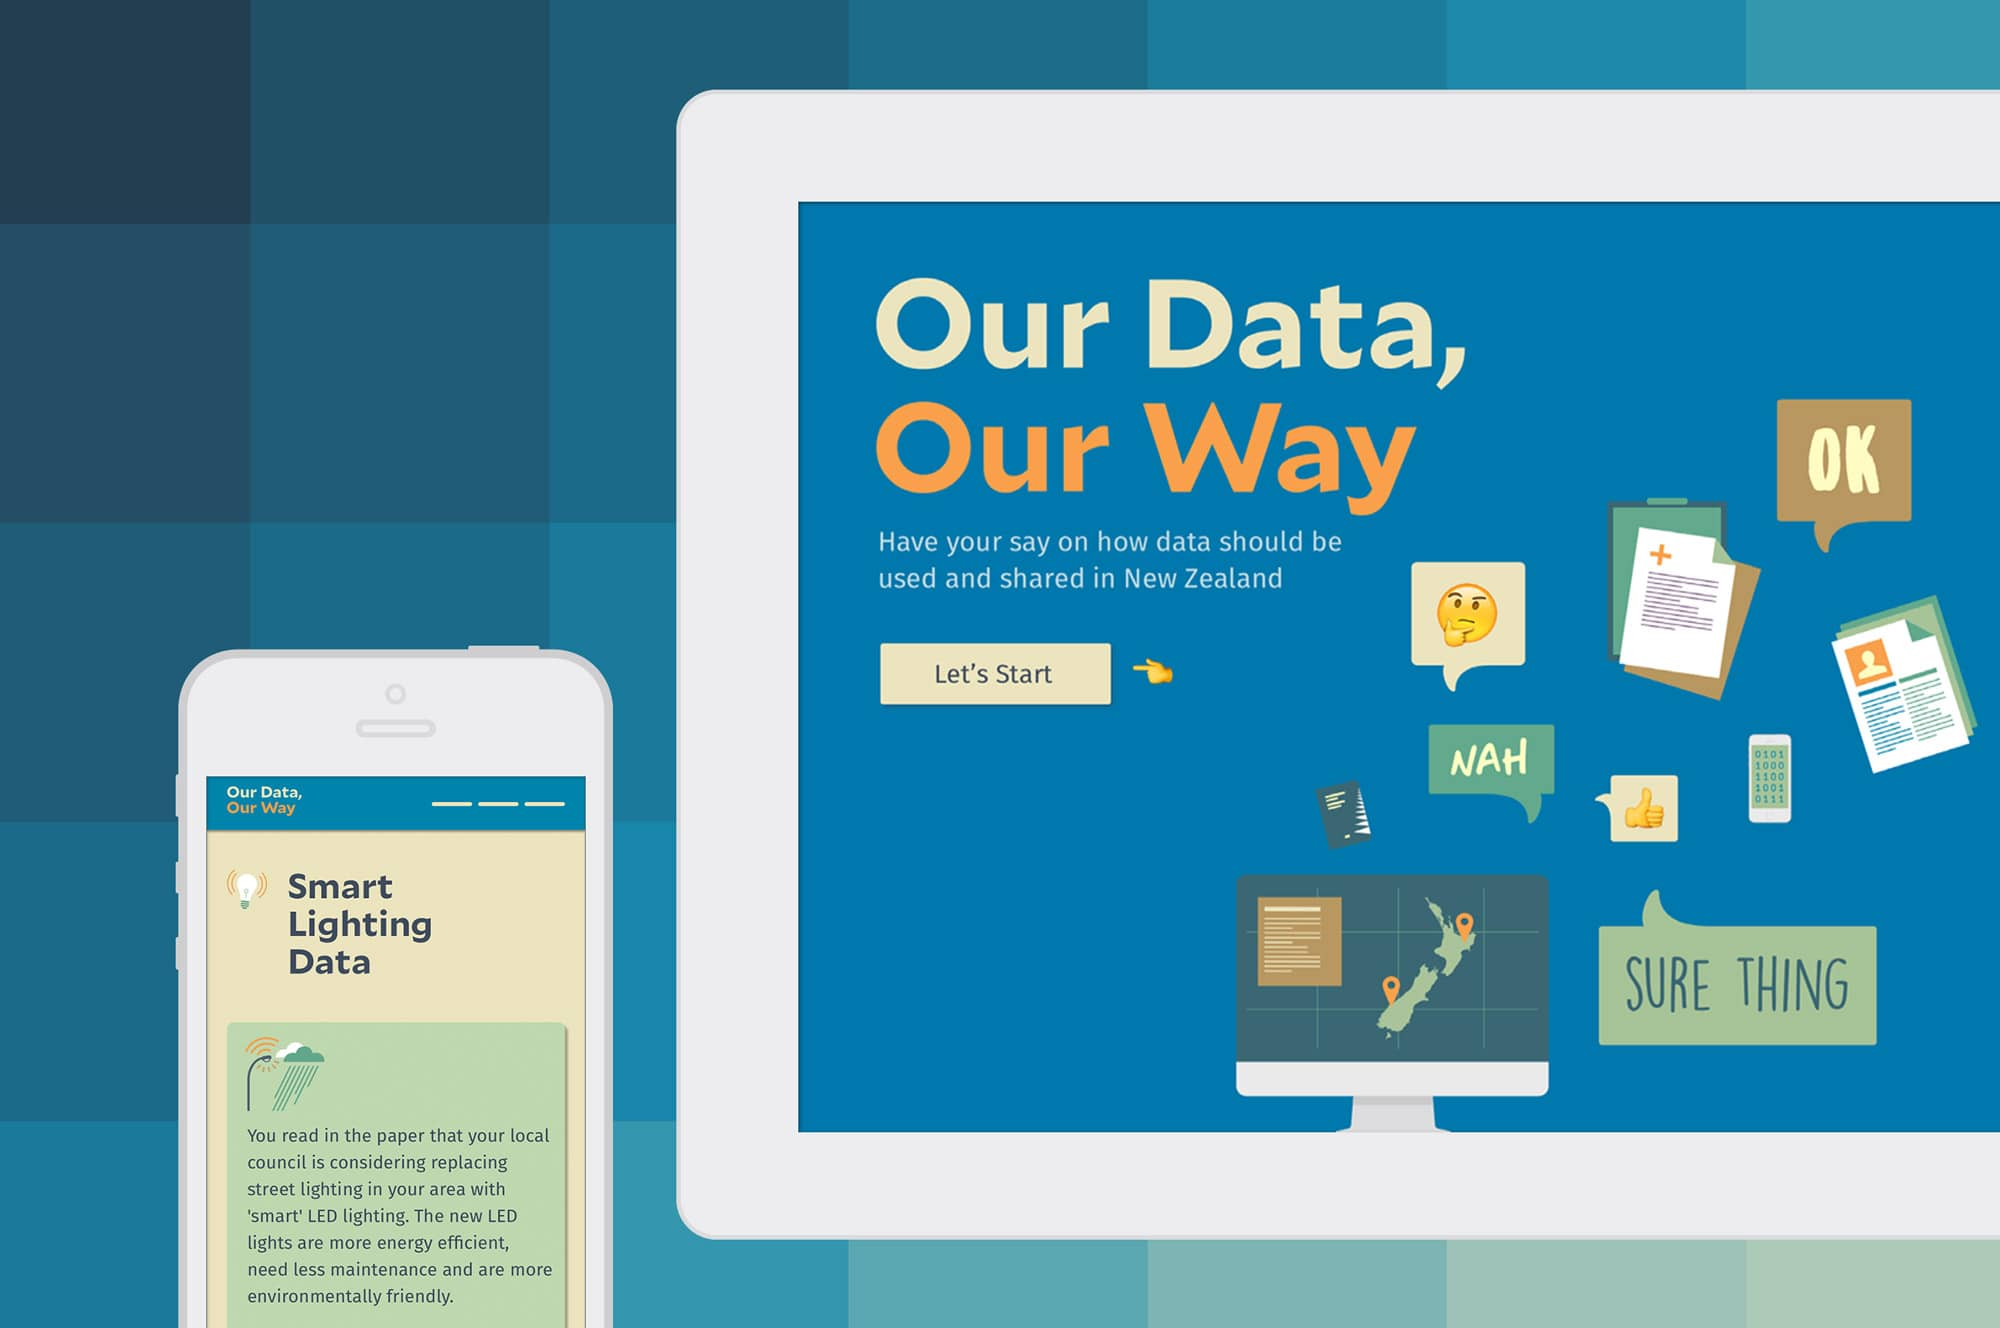 Our Data, Our Way